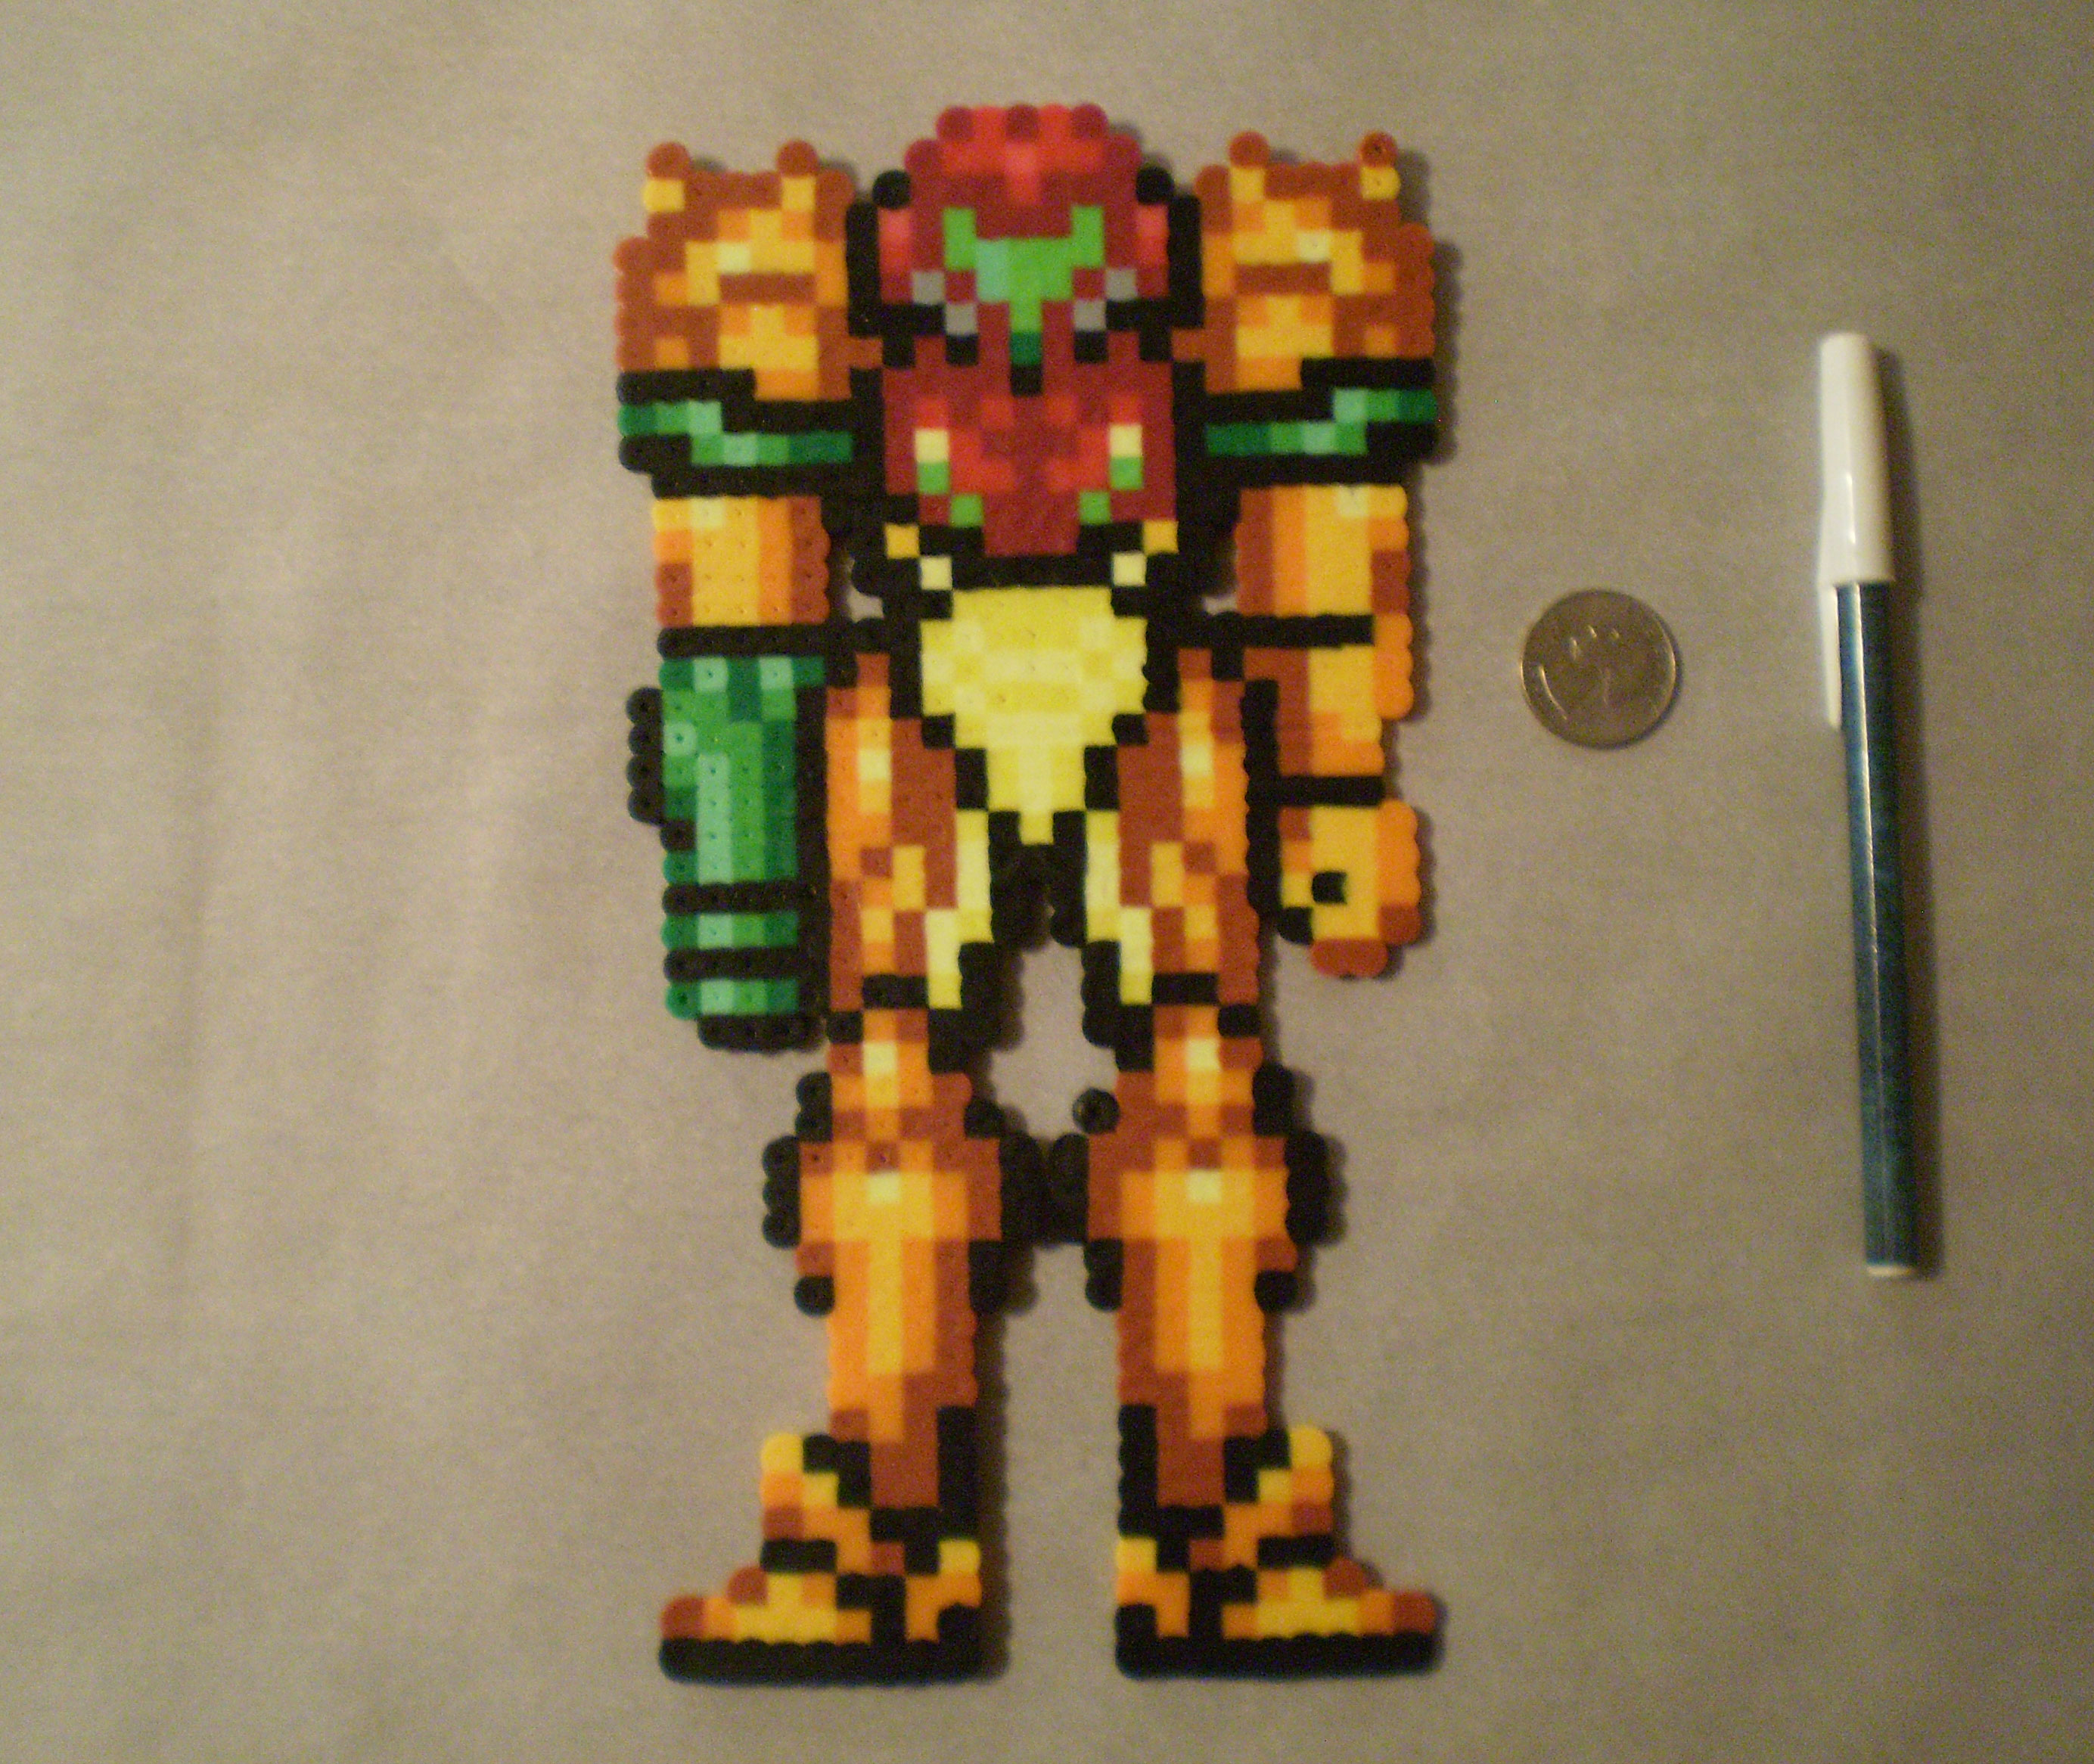 Super Metroid Samus Aran, customized Varia Suit from Jandrem Designs